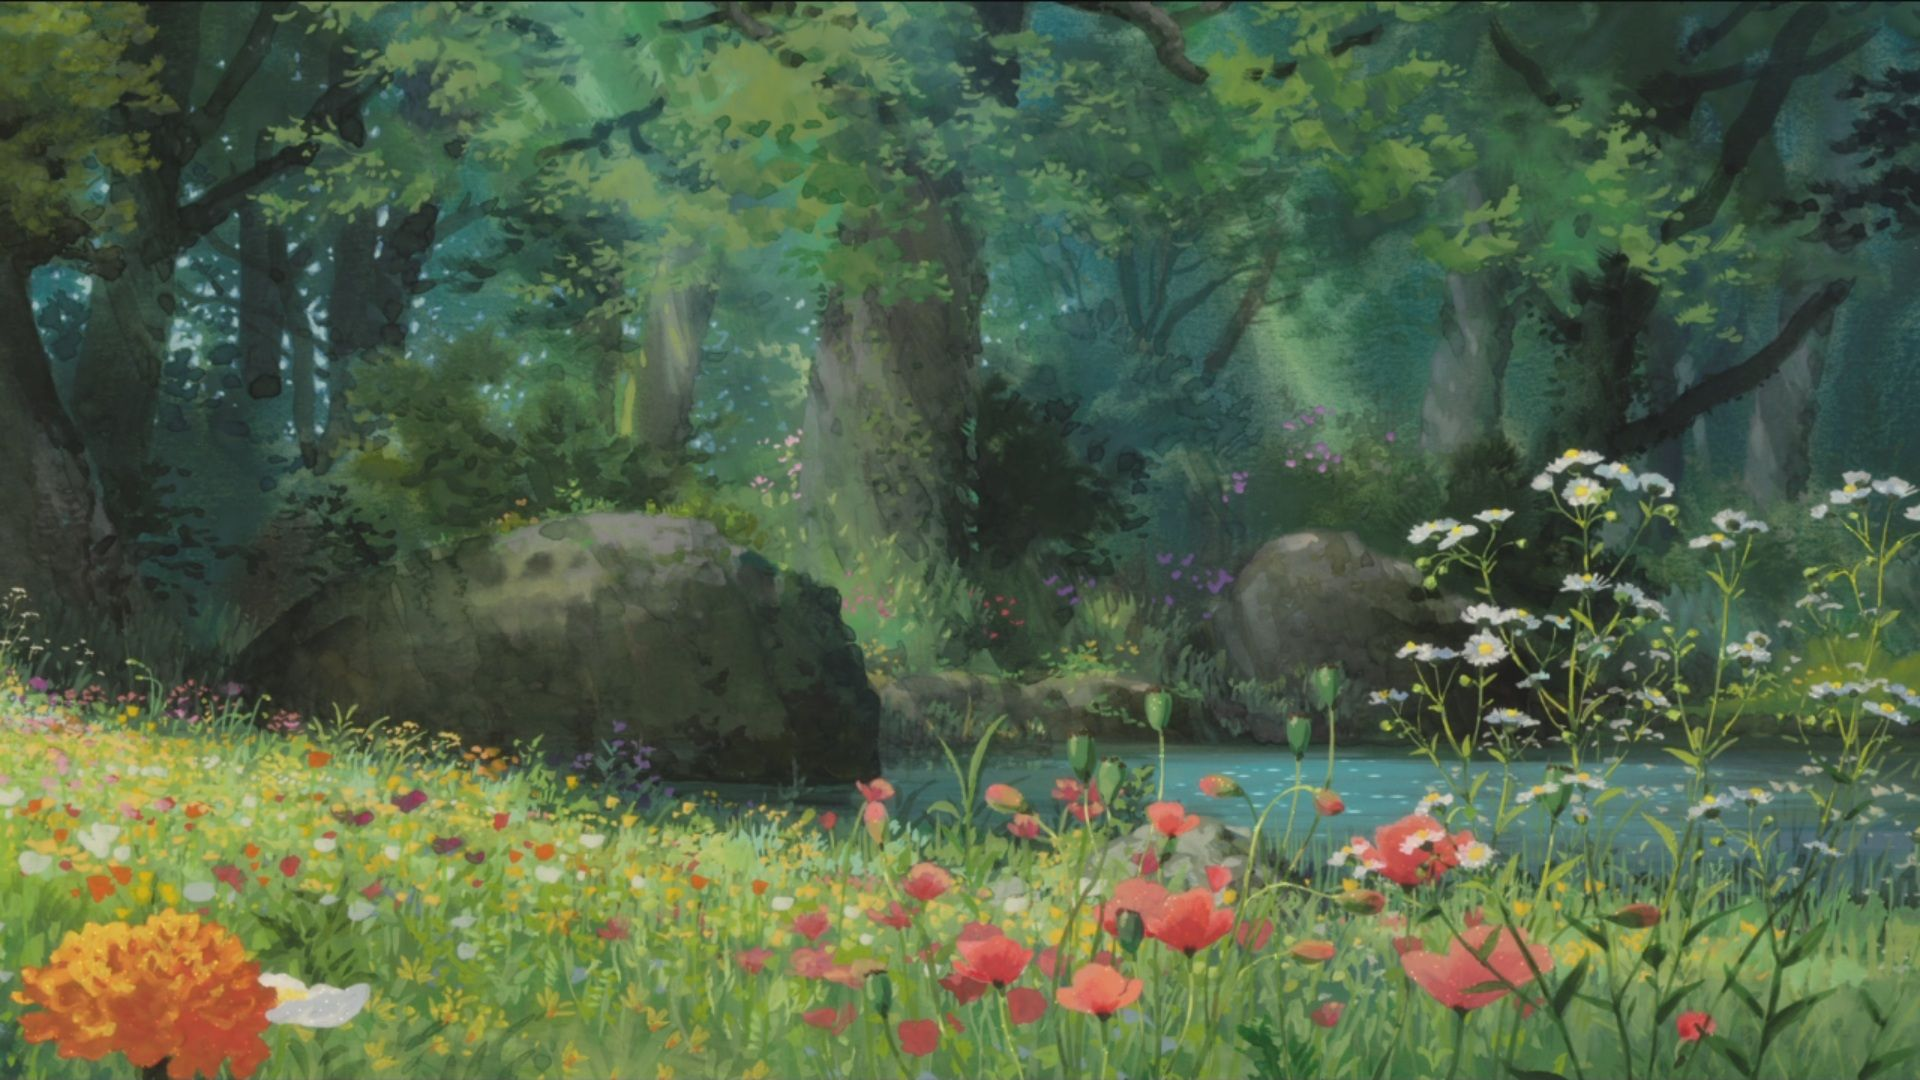 Https Www Google Co Th Blank Html Anime Scenery Studio Ghibli Background Landscape Poster